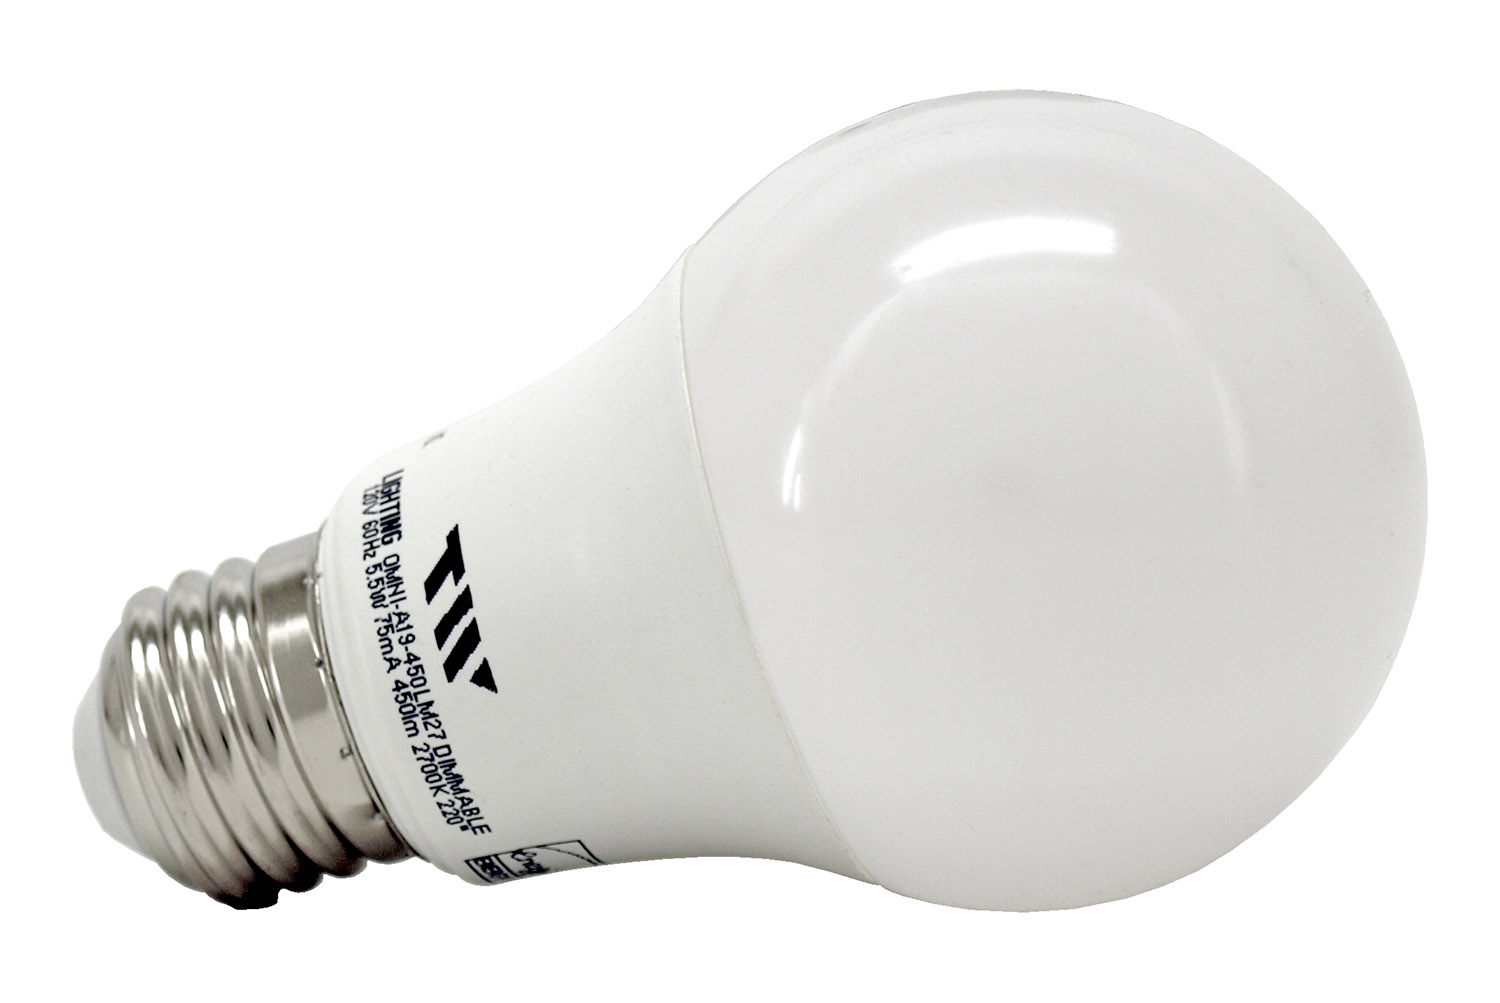 A19 LED Light Bulb - 450 Lumens - 2700k